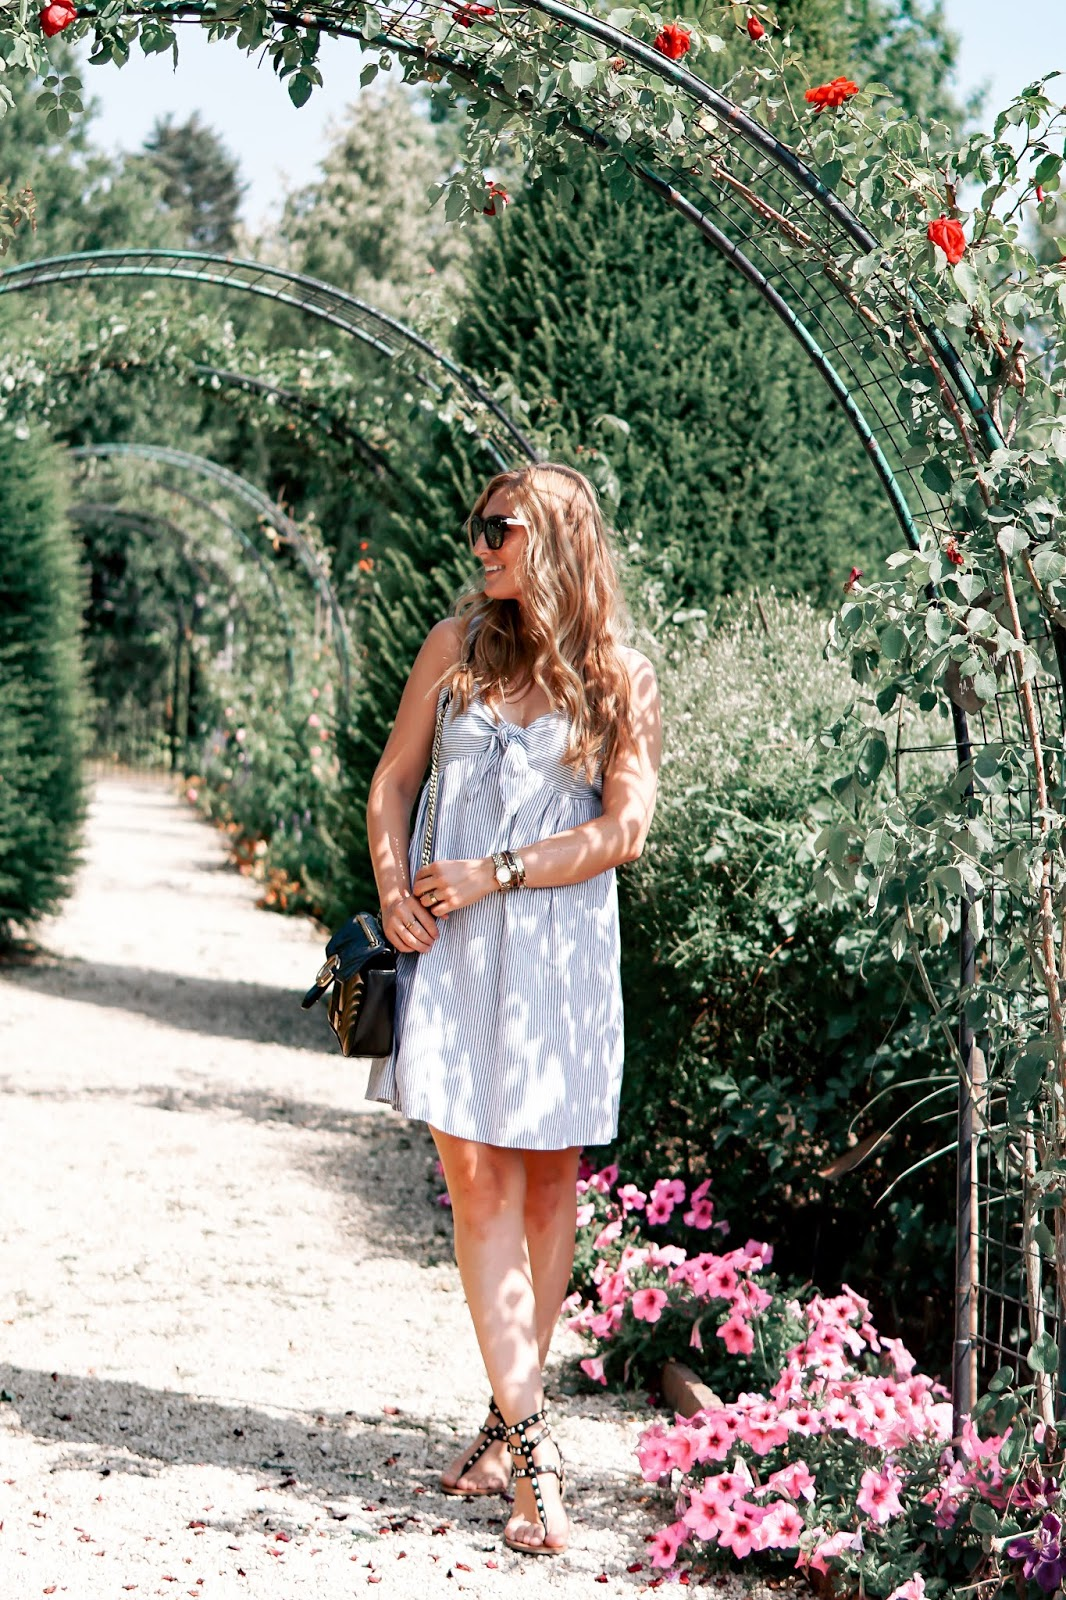 My Colloseum, Sommer Kleid - Fashionstylebyjohanna - Sommeroutfit - Inspiration